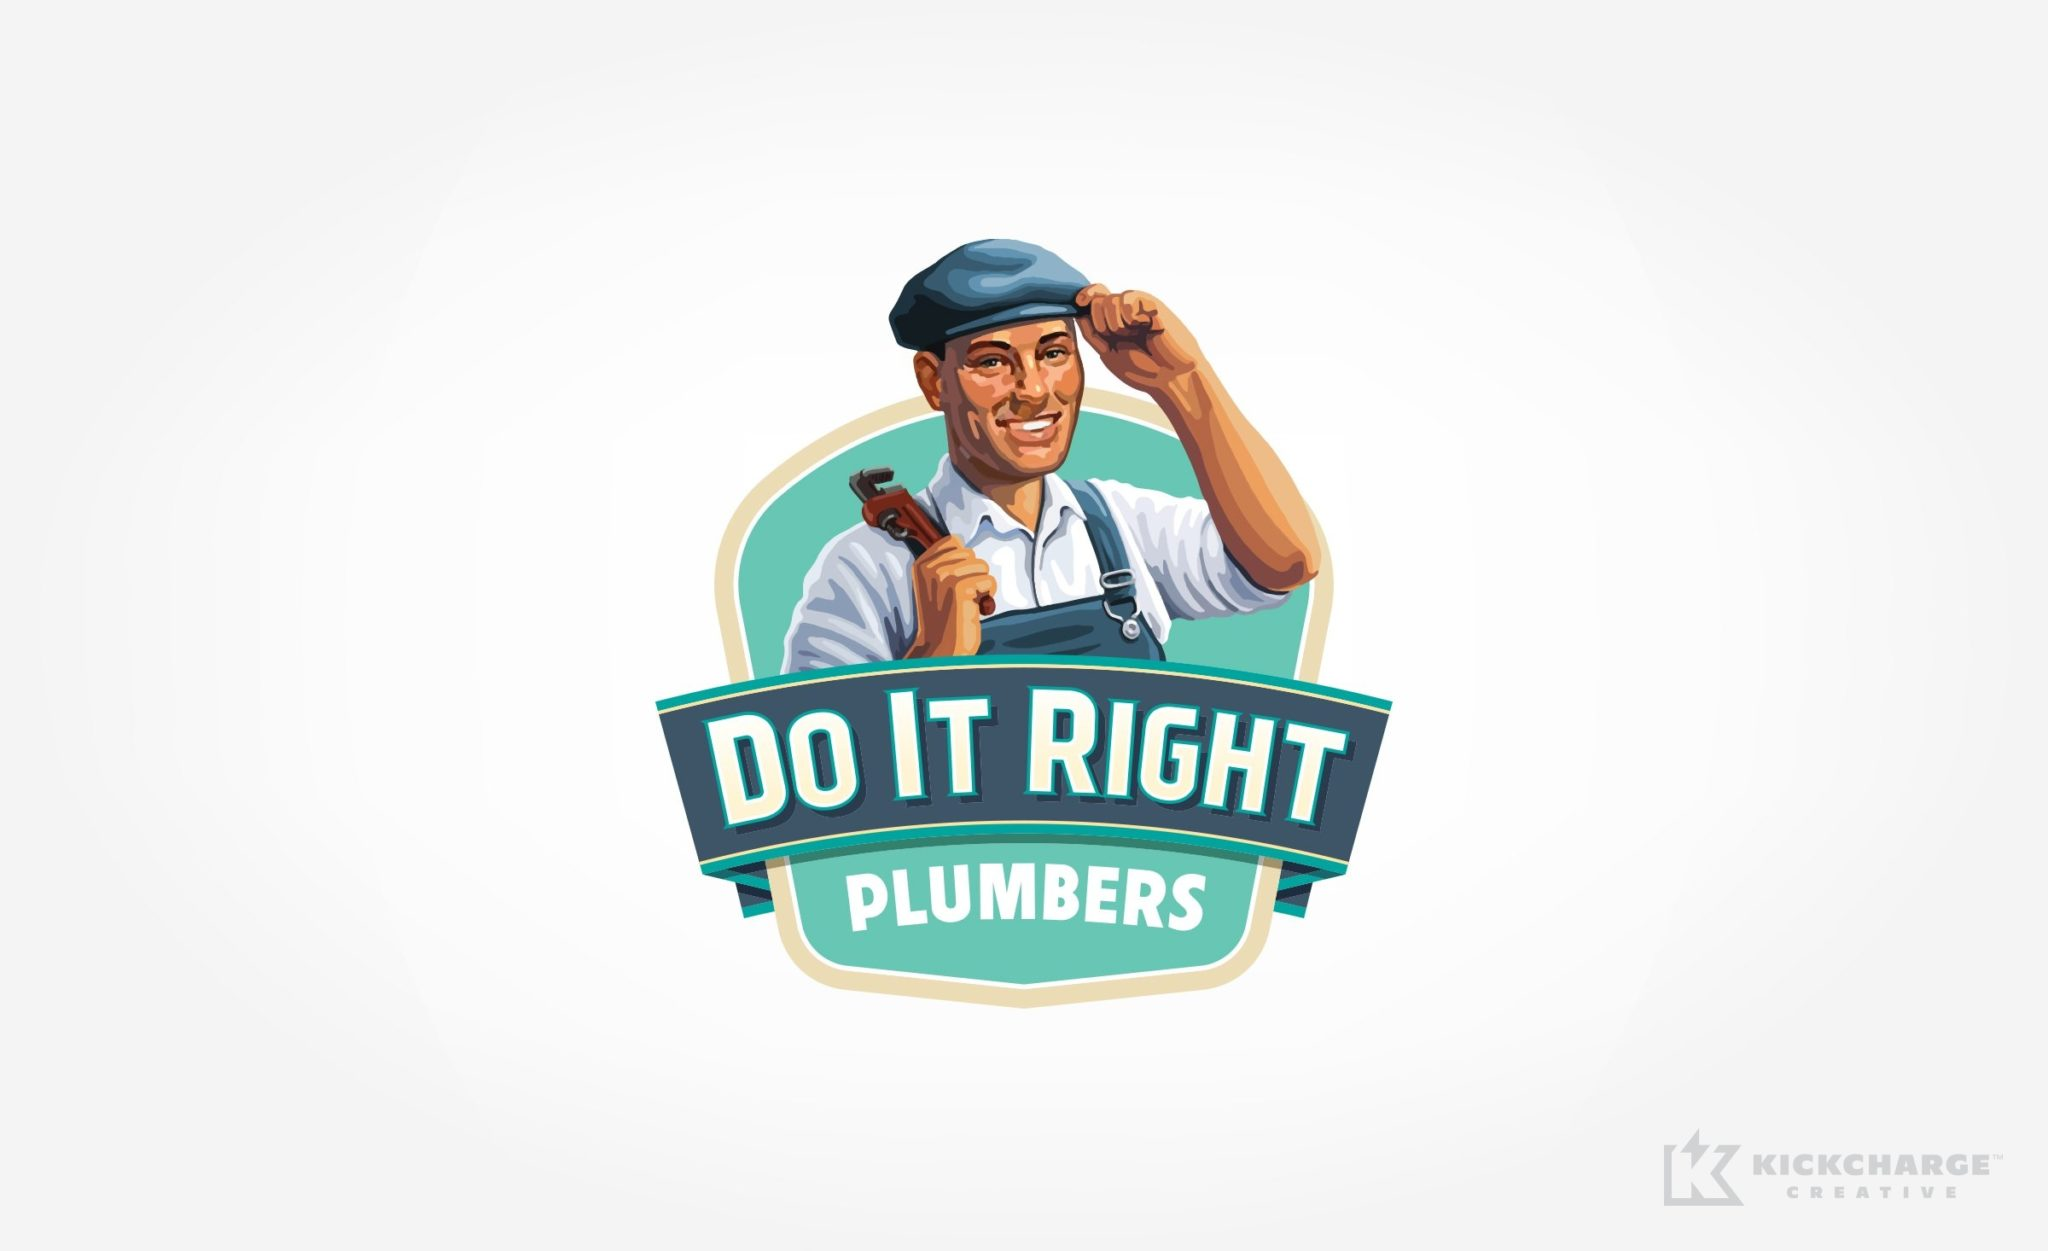 Do It Right Plumbers